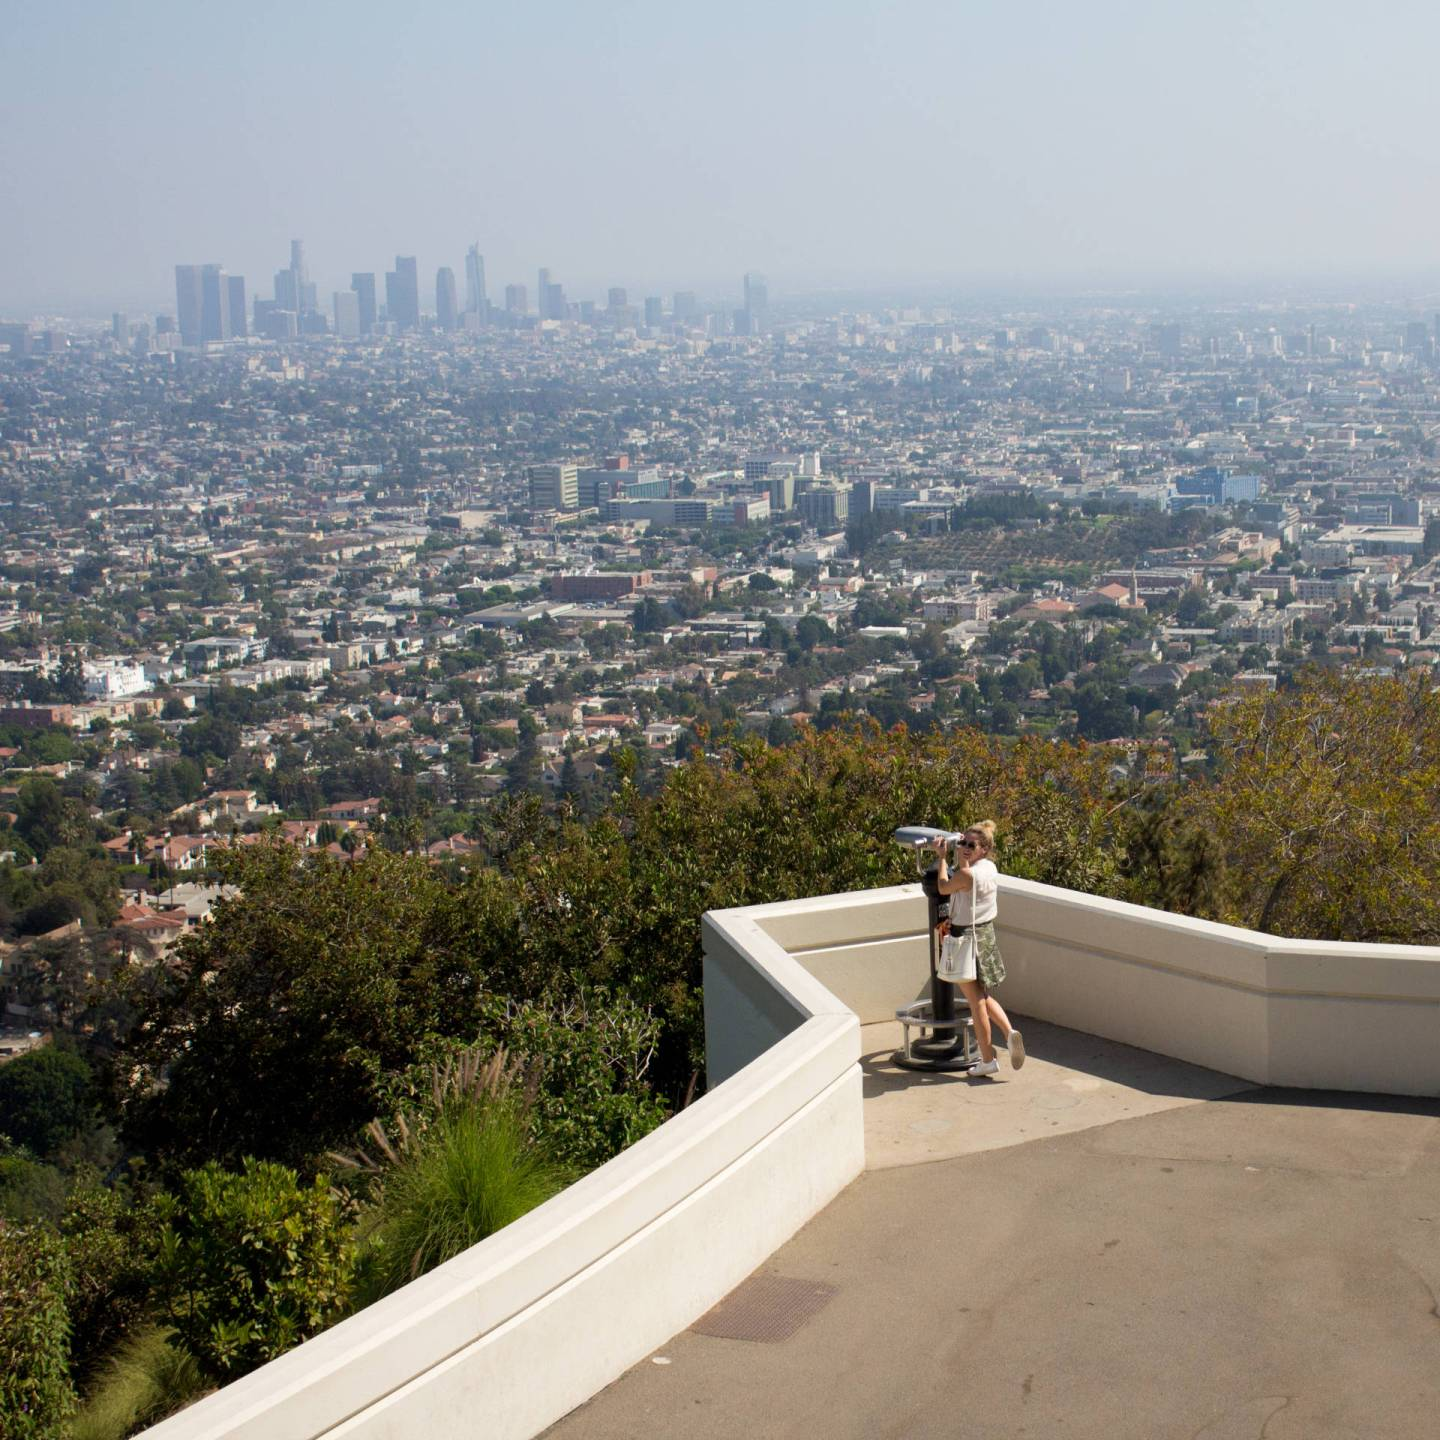 griffith observatory lookout view of LA